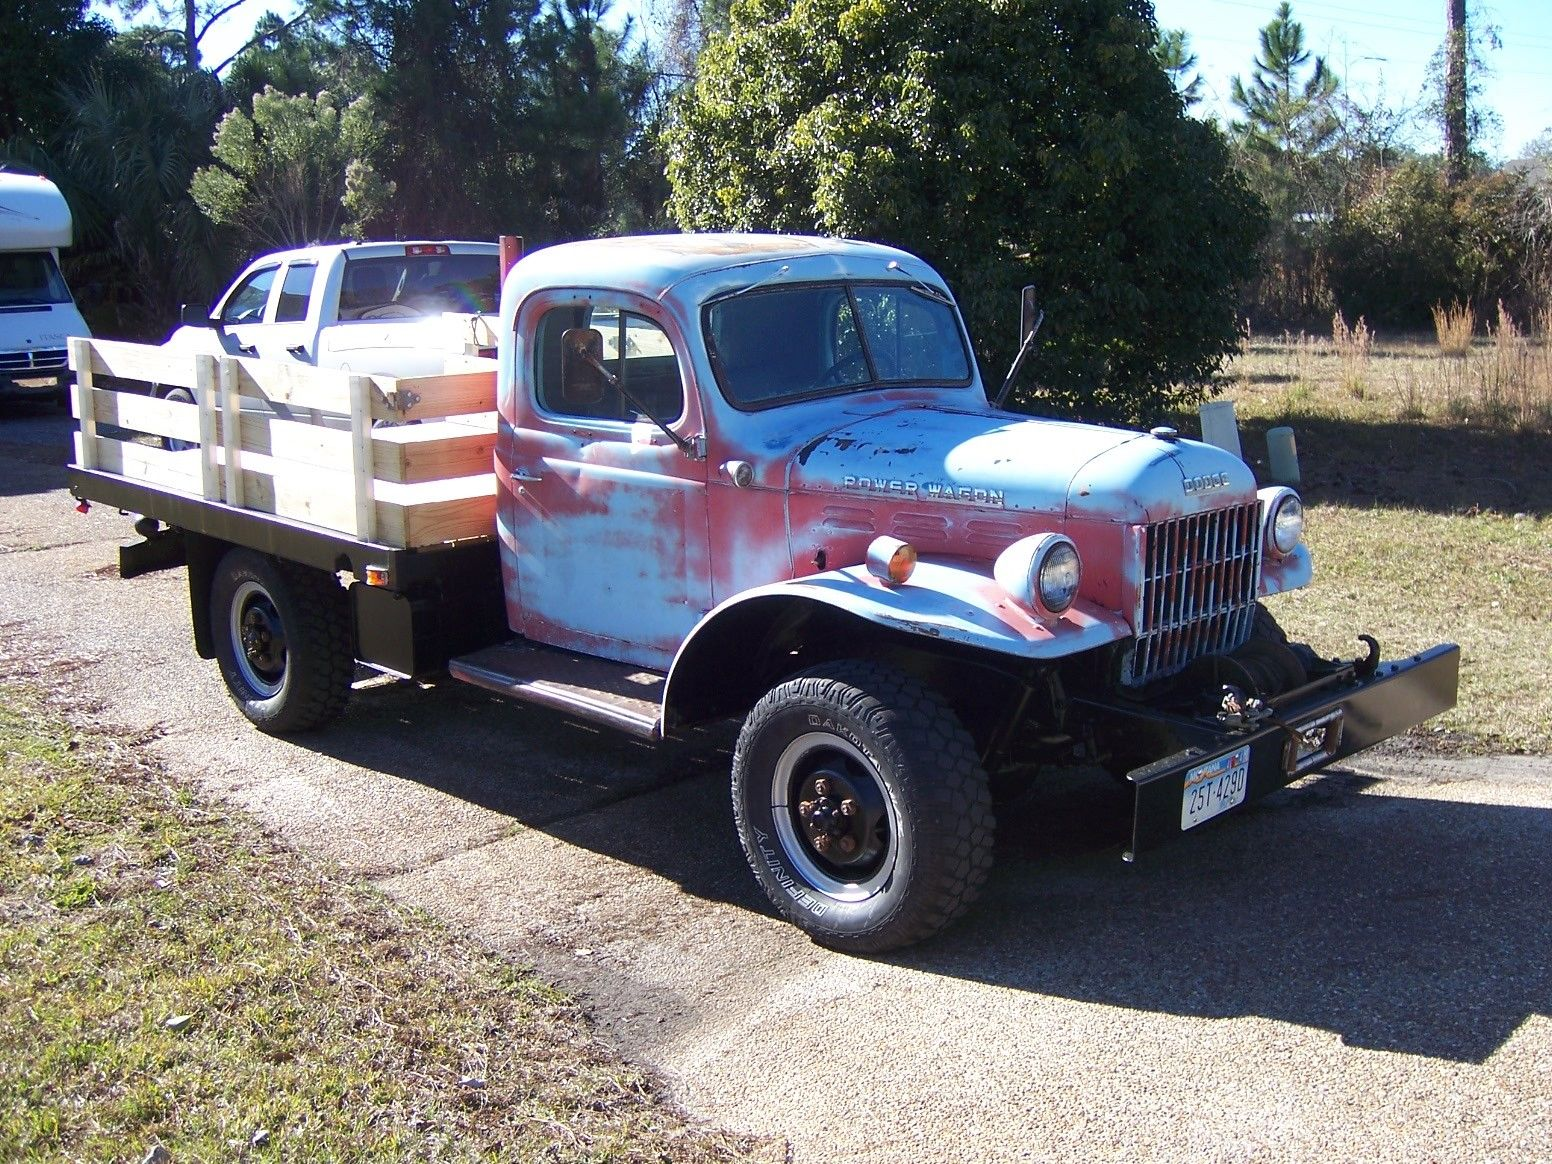 1955 dodge power wagon base c3 pw6 126 3 8l1955 Dodge Power Wagon Base 38l For Sale #3